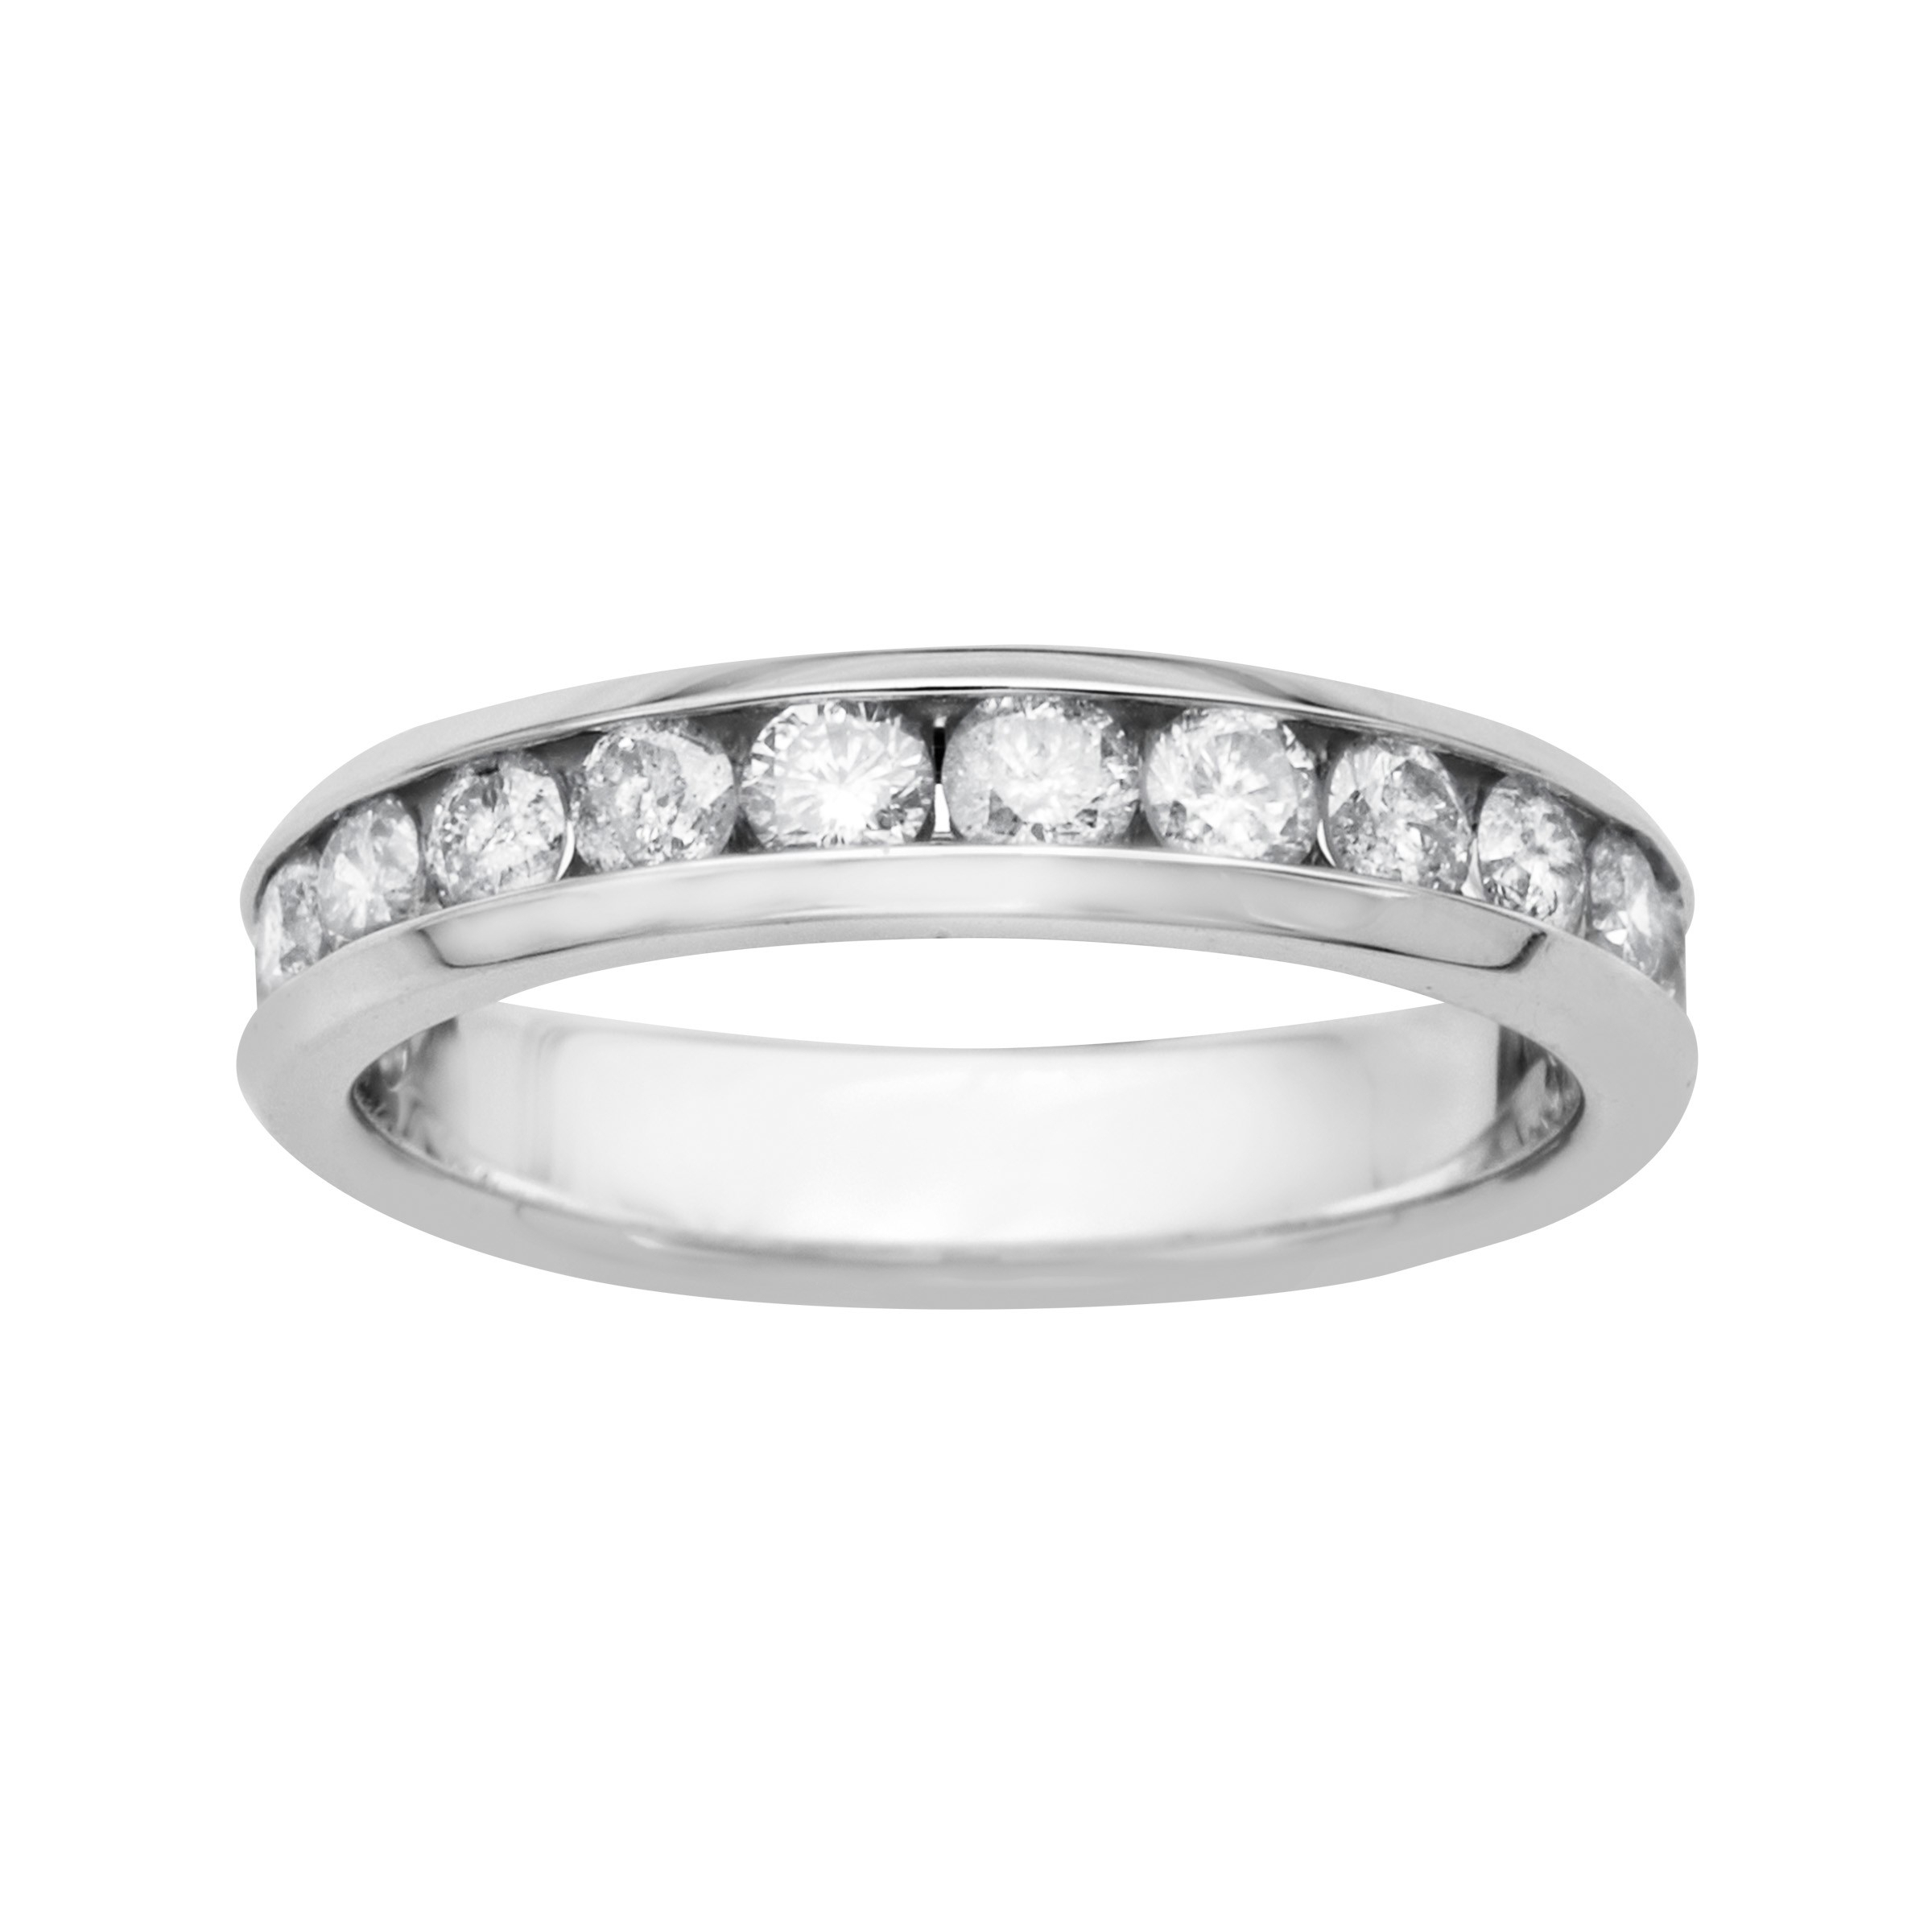 Details About Igi Certified 1 Ct Diamond Anniversary Band In 14K White Gold Intended For Most Current Diamond Contour Anniversary Bands In White Gold (Gallery 13 of 25)